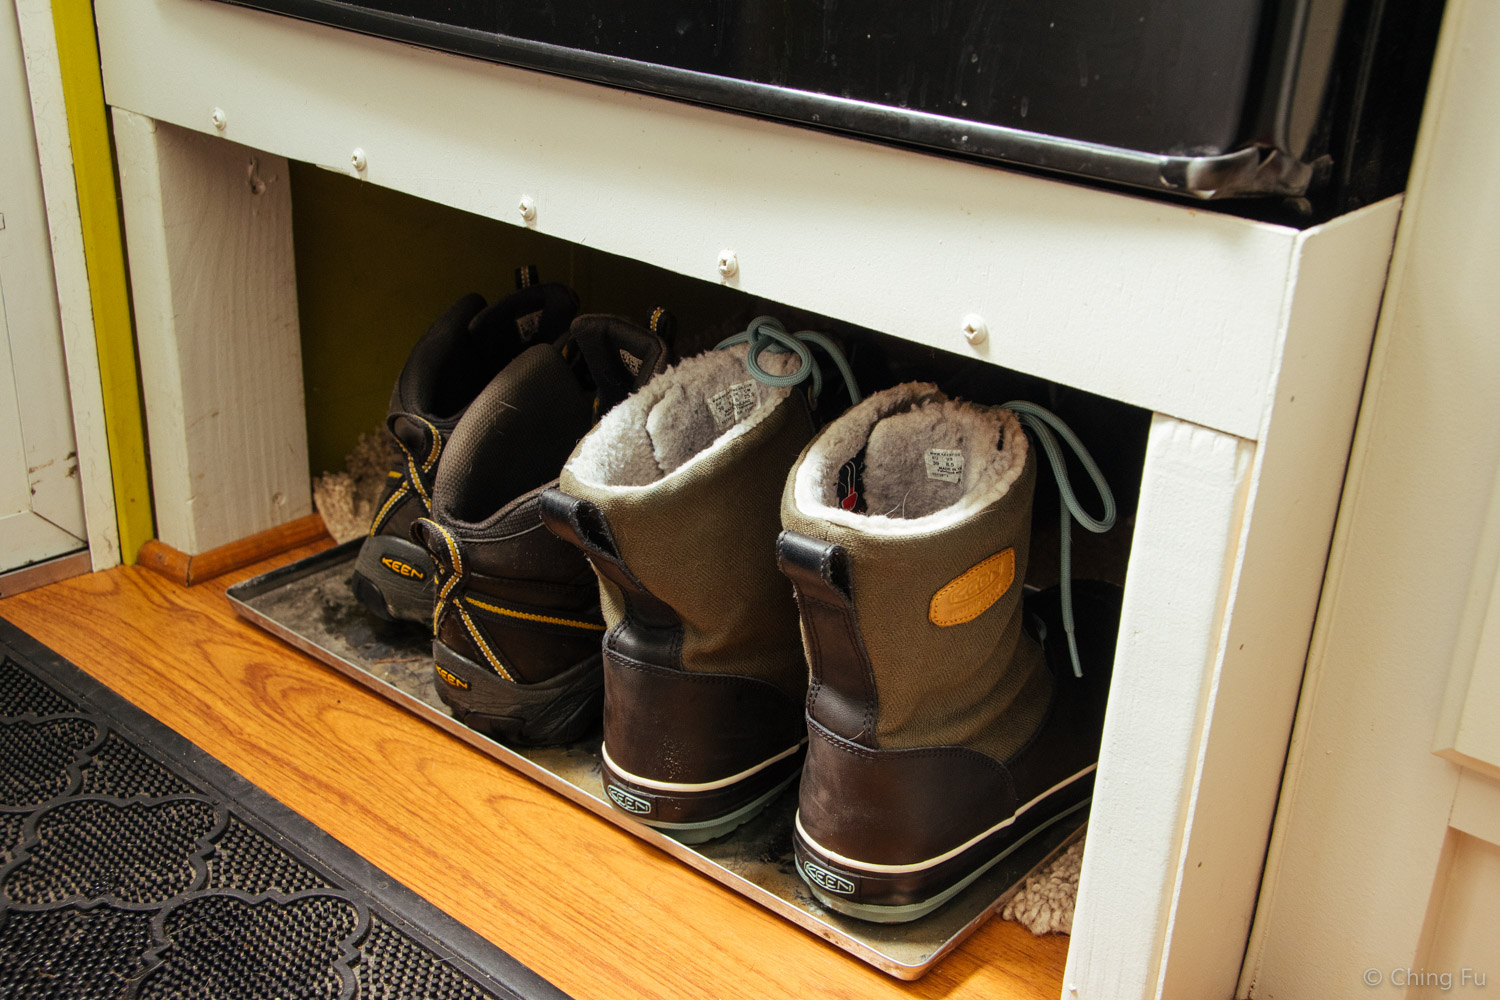 Our $1 baking sheet turned boot tray.